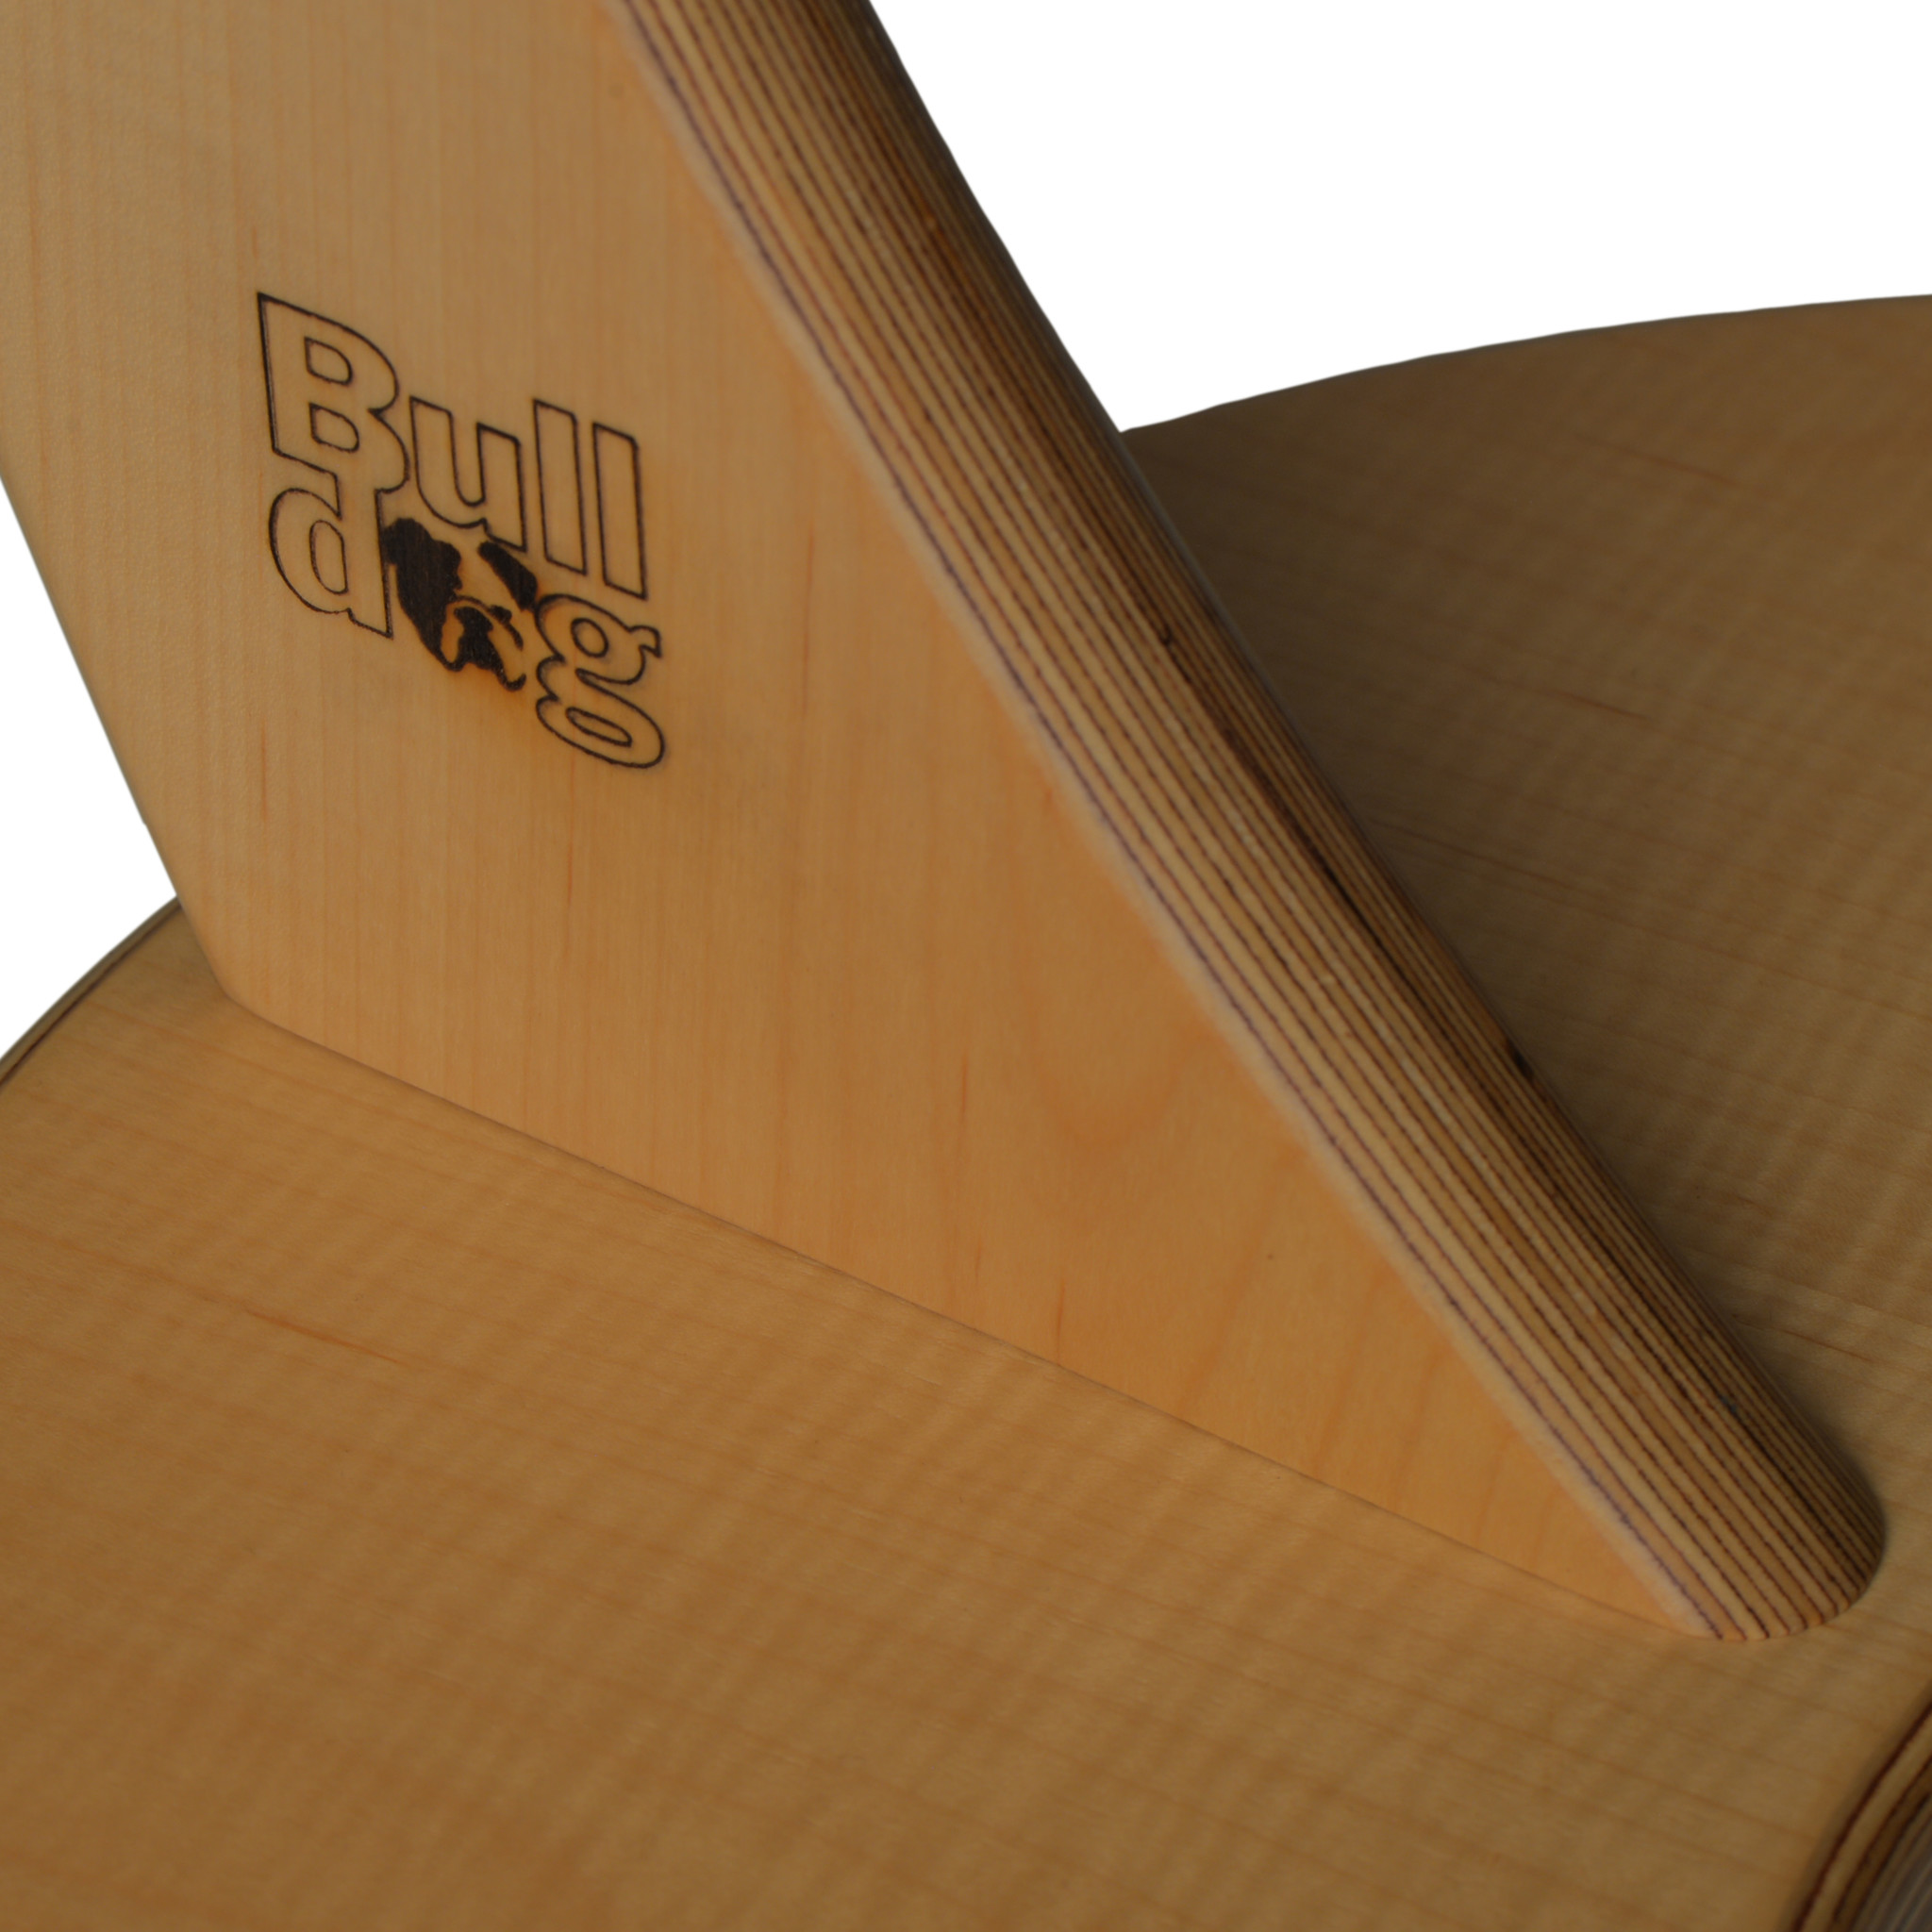 Dragon One - Flamed Maple (Limited Ed.)